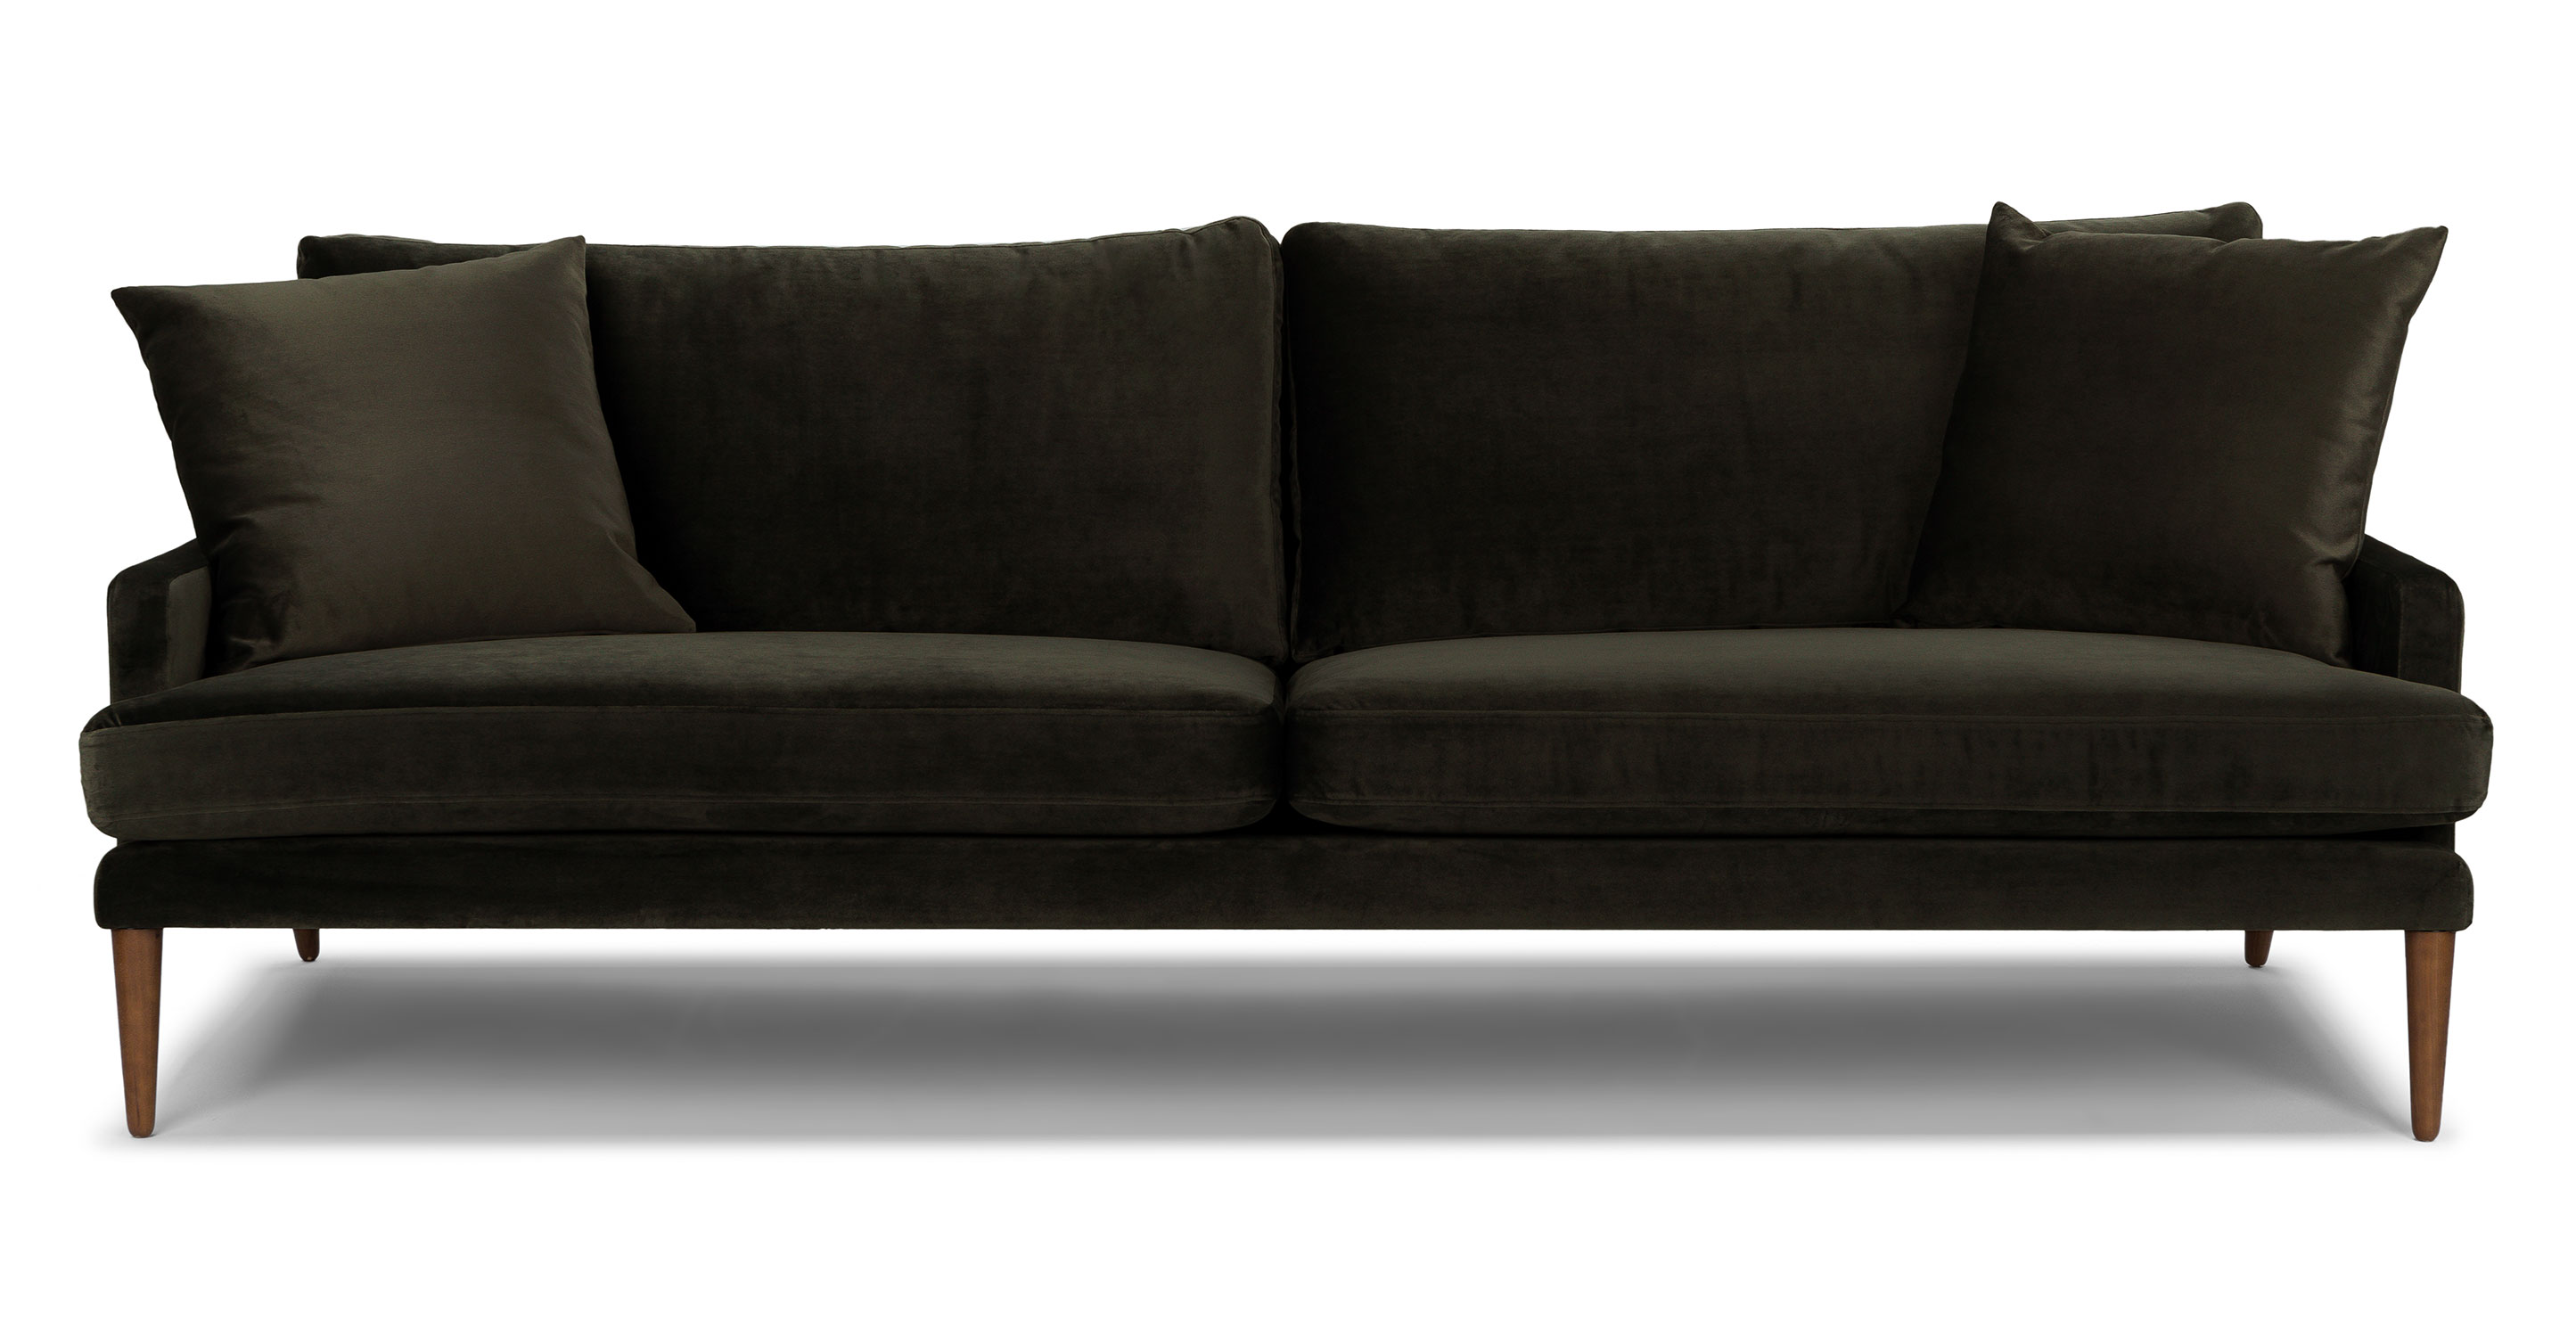 stain proof sofa fabric size of 3 seater luxu cedar green chair - lounge chairs article | modern ...